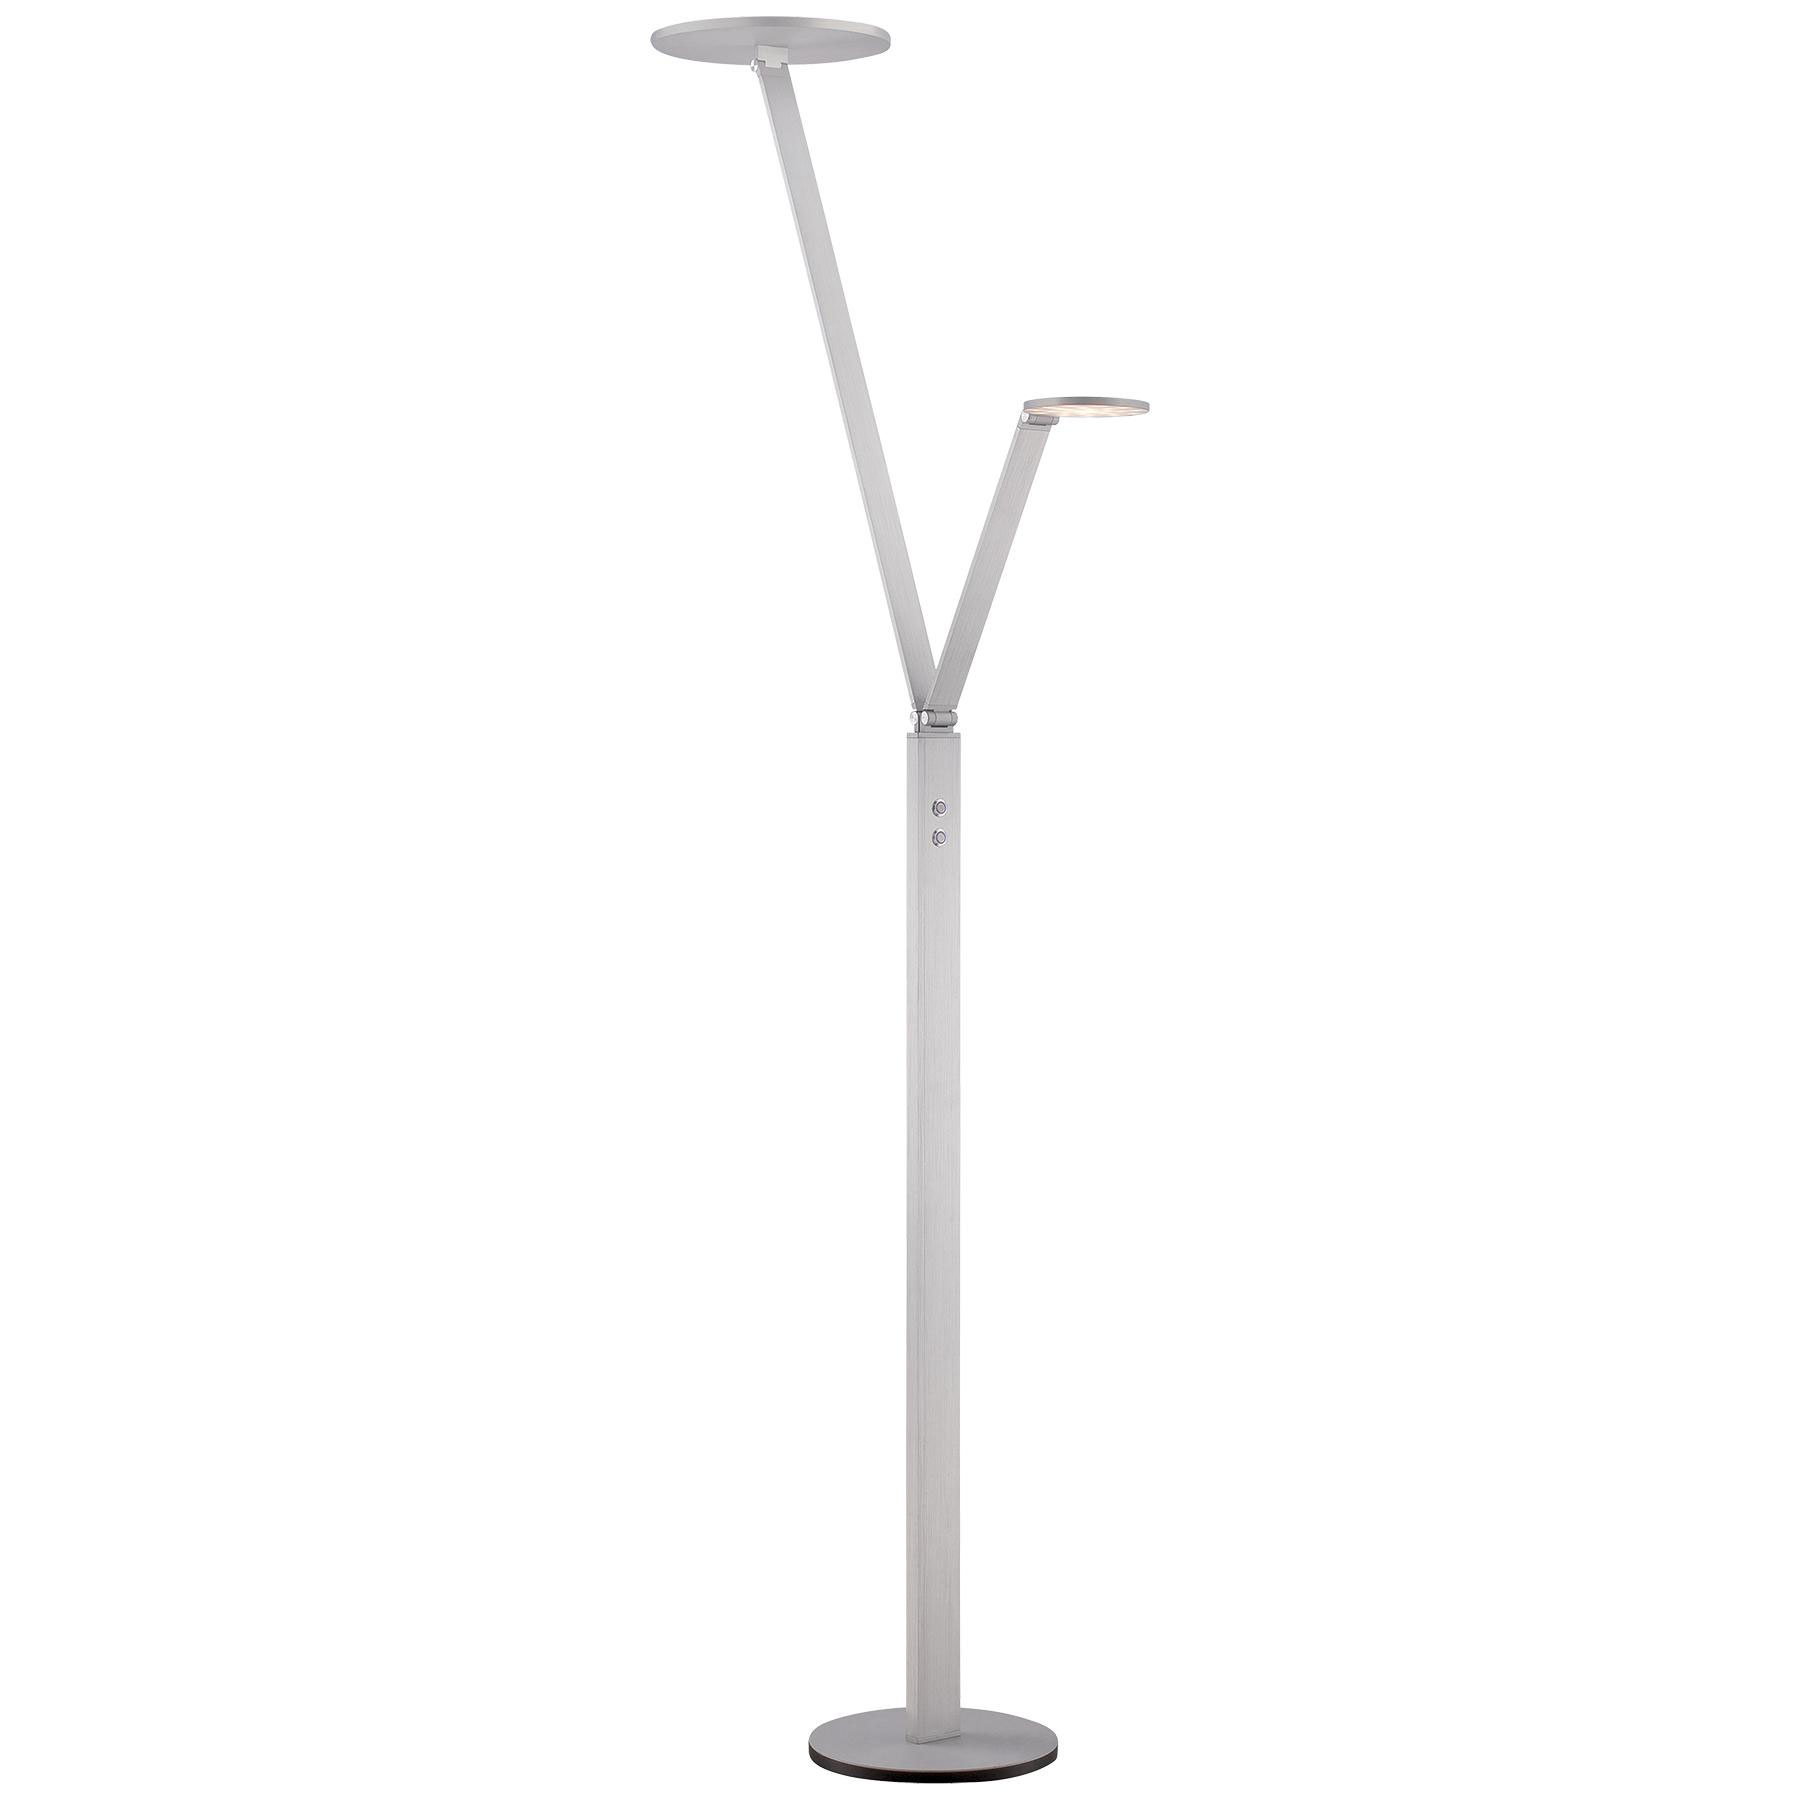 P305 Double LED Floor Task Lamp By George Kovacs | P305 3 654 L